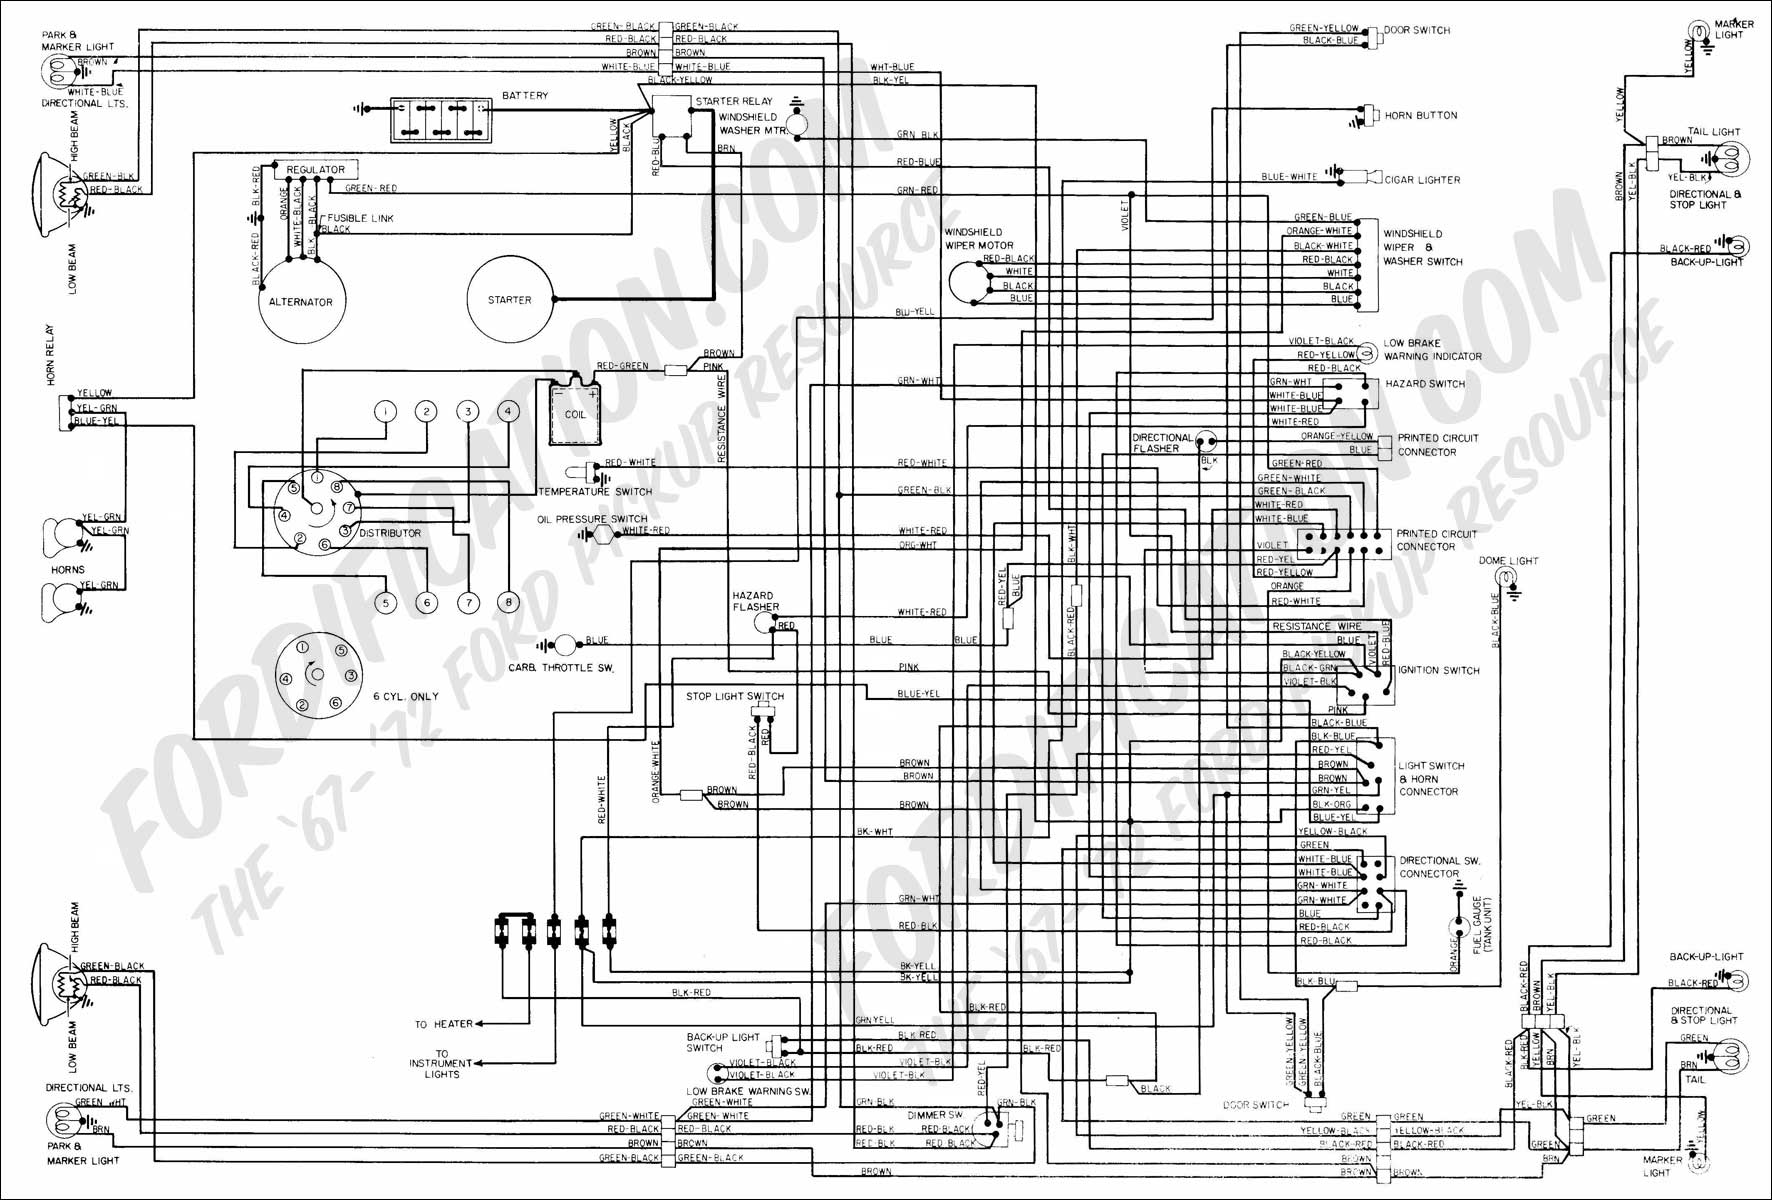 wiring diagram 72_quick ford focus 2008 wiring diagram pdf efcaviation com ford mondeo wiring diagram pdf at panicattacktreatment.co